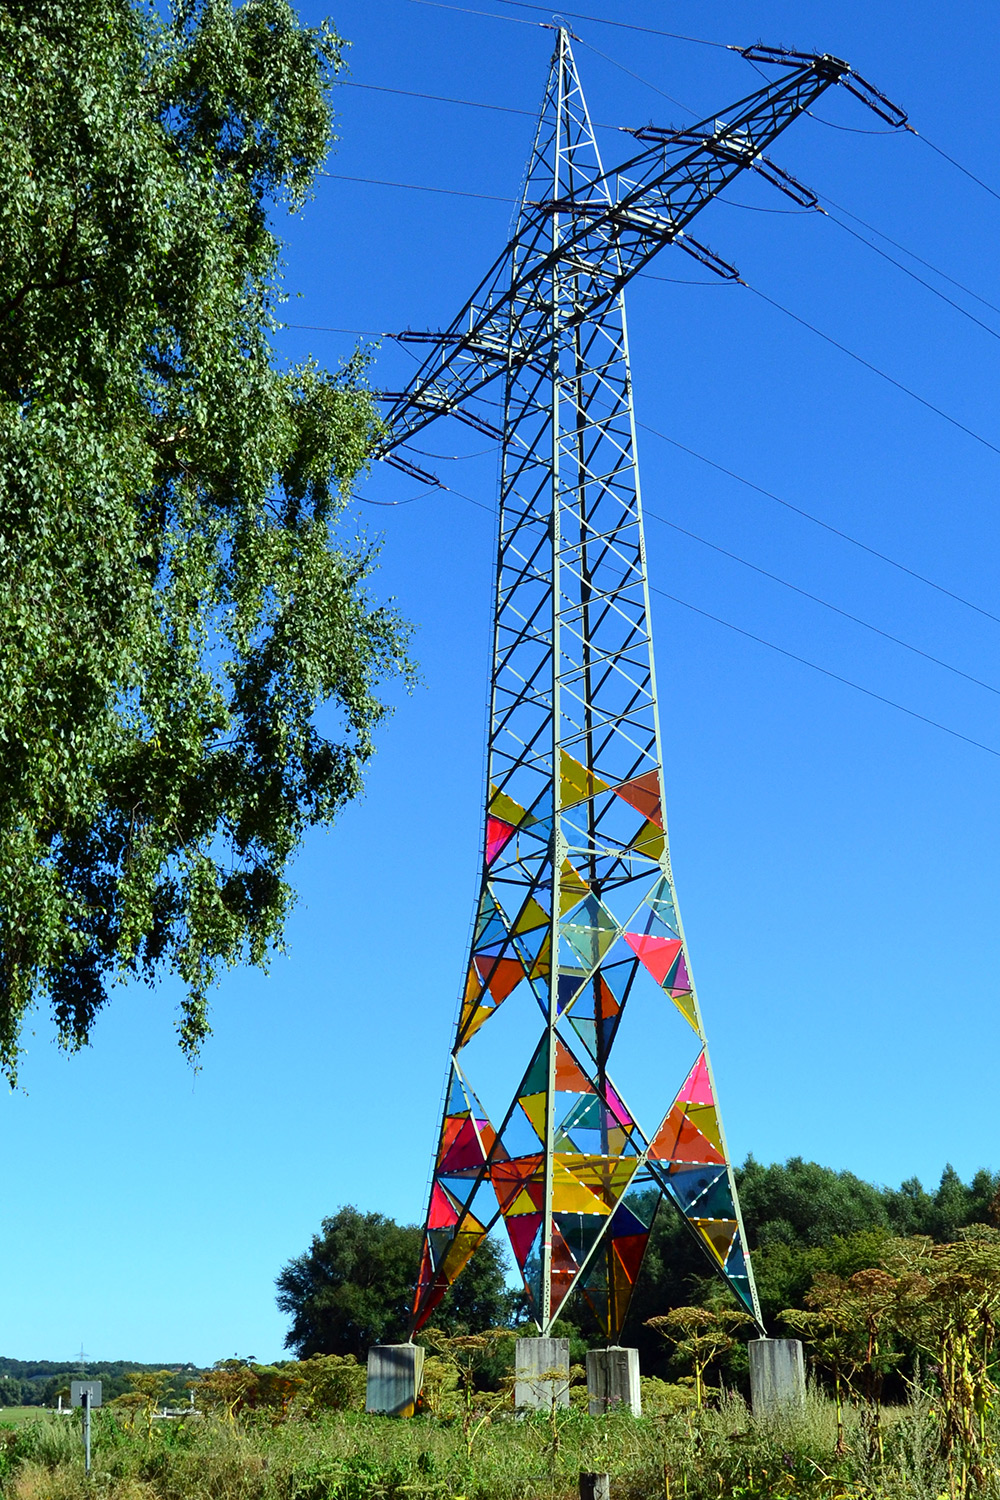 Art Students Transform an Electrical Tower into a Stained Glass Lighthouse | Colossal